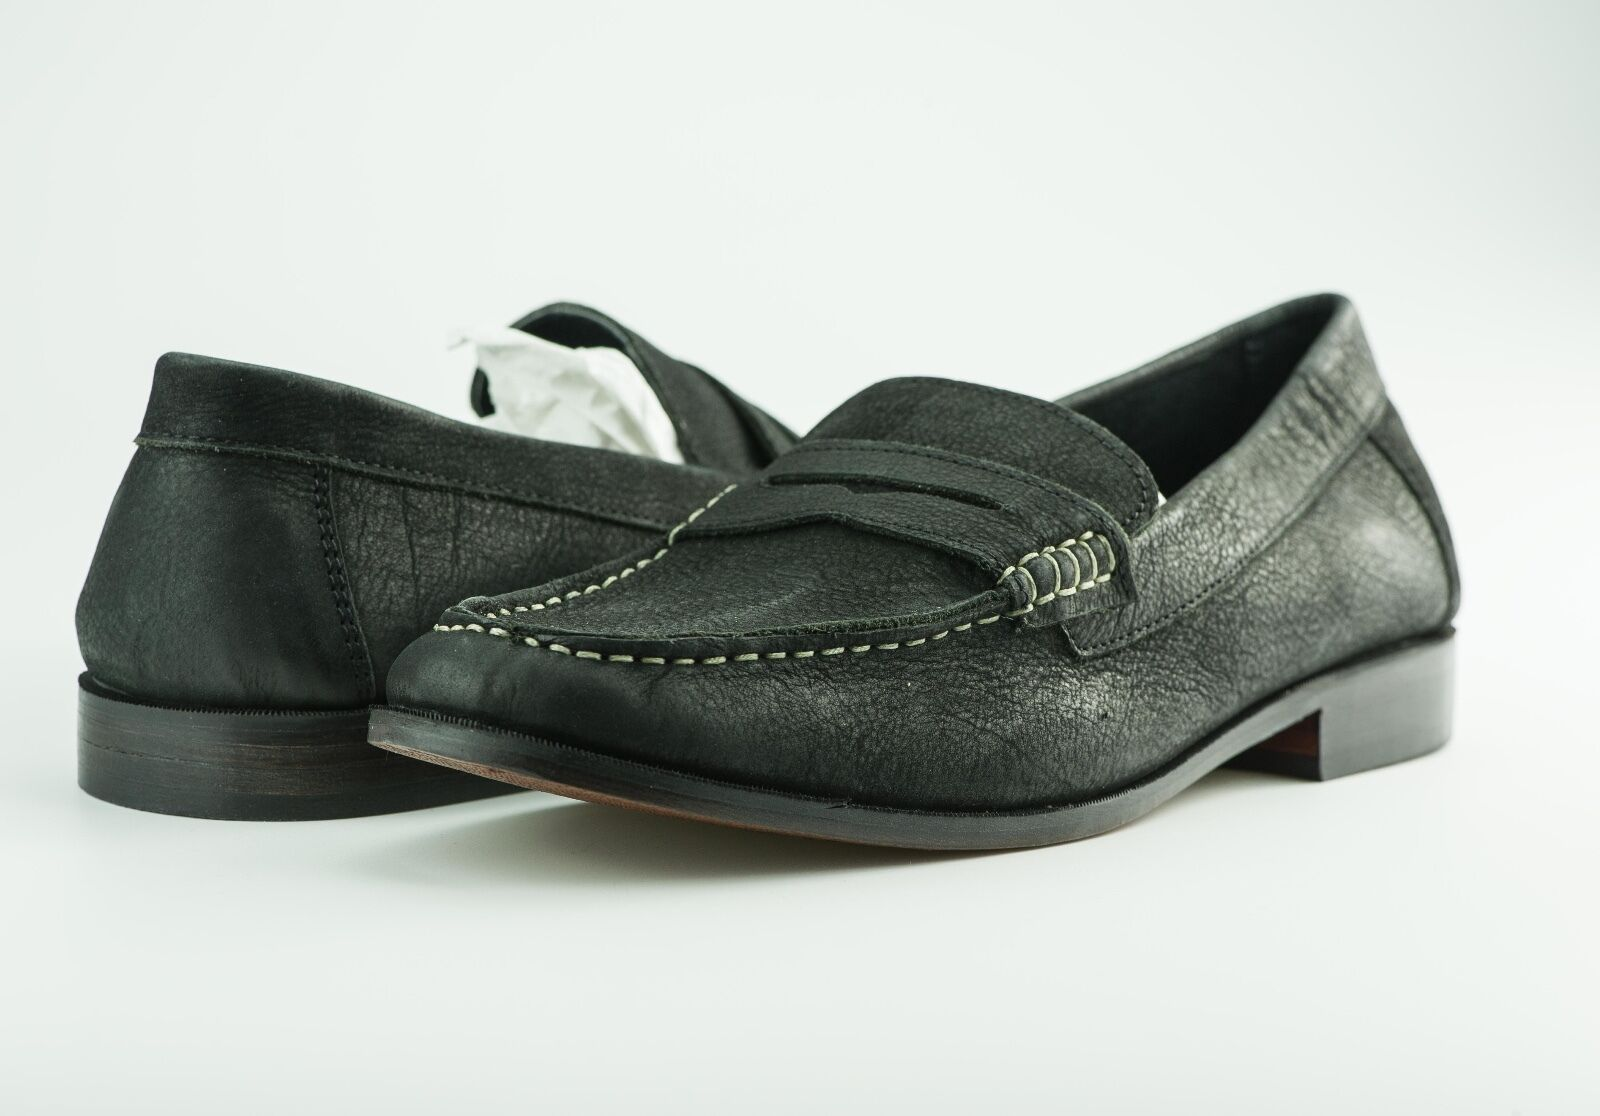 HARRYKSON Leder Gr. Mokassins / BusinessSchuhe Gr. Leder 44 Schwarz Slipper 480b6c